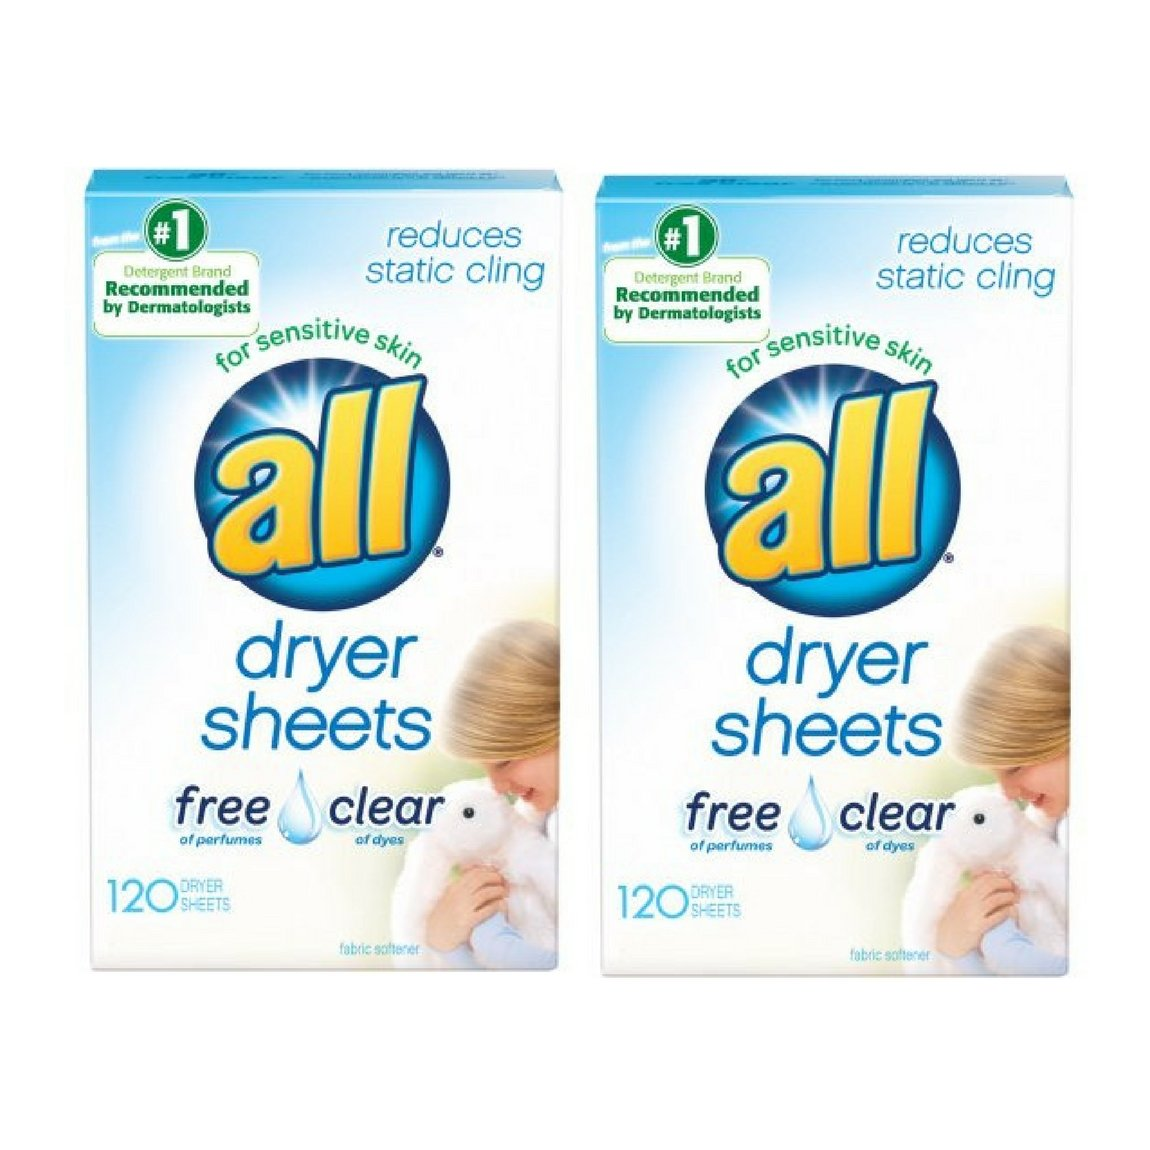 all Fabric Softener Dryer Sheets for Sensitive Skin, Free Clear, 120 Count - 2 Packs